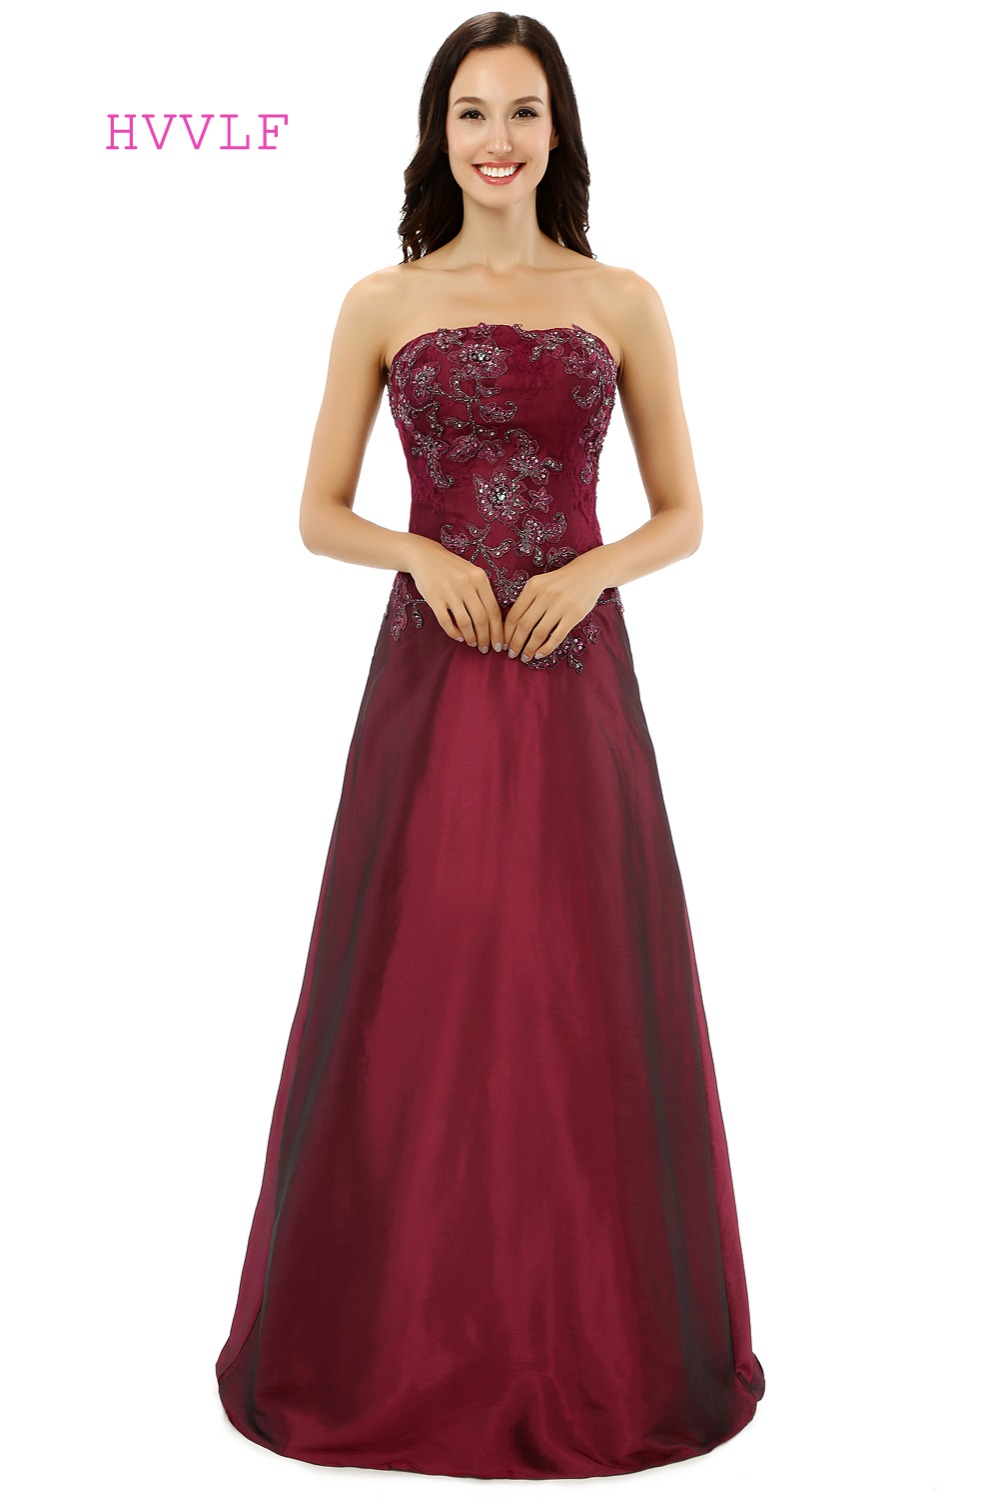 Burgundy 2019 Mother Of The Bride Dresses A-line Strapless Taffeta Lace Beaded Groom Formal Long Mother Dresses For Wedding